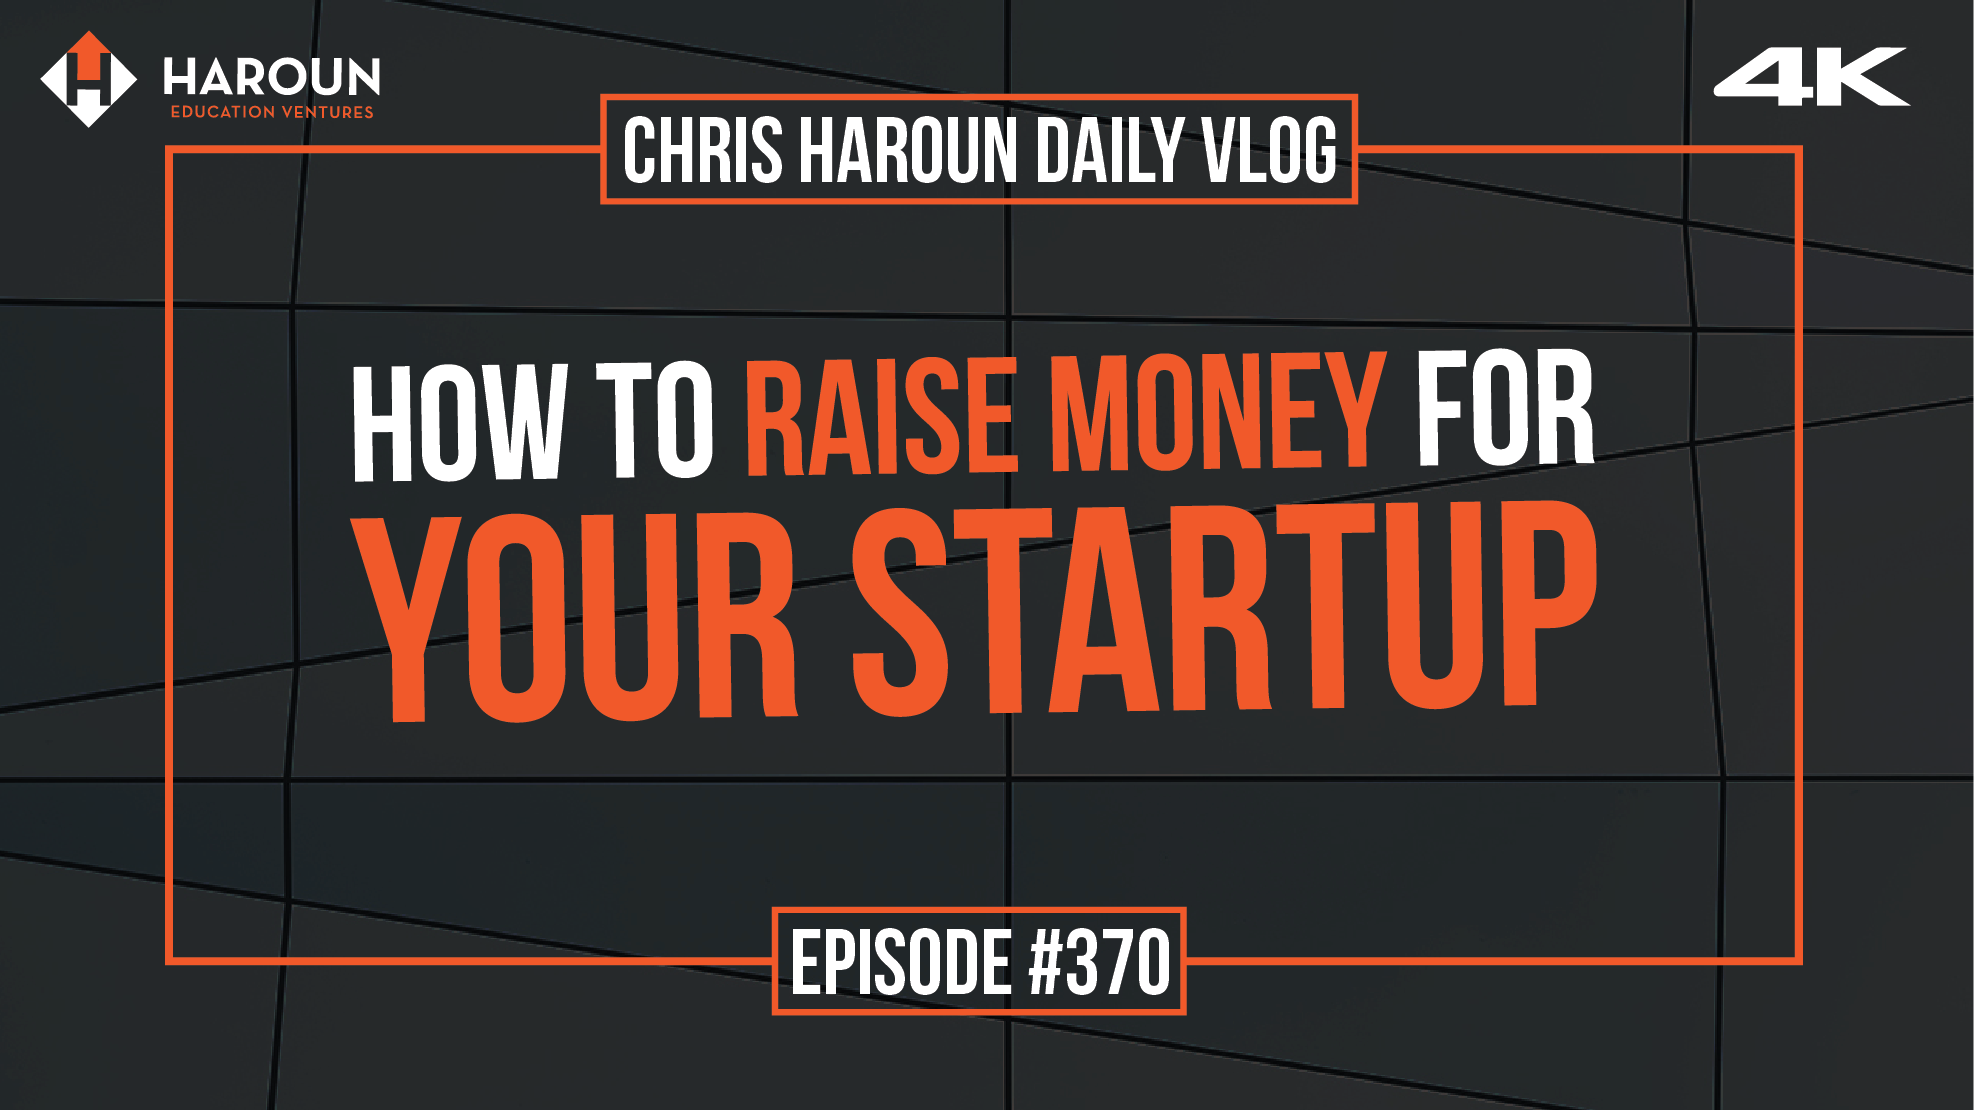 VLOG_370_8_5_2019_How to Raise Money for Your Startup.png